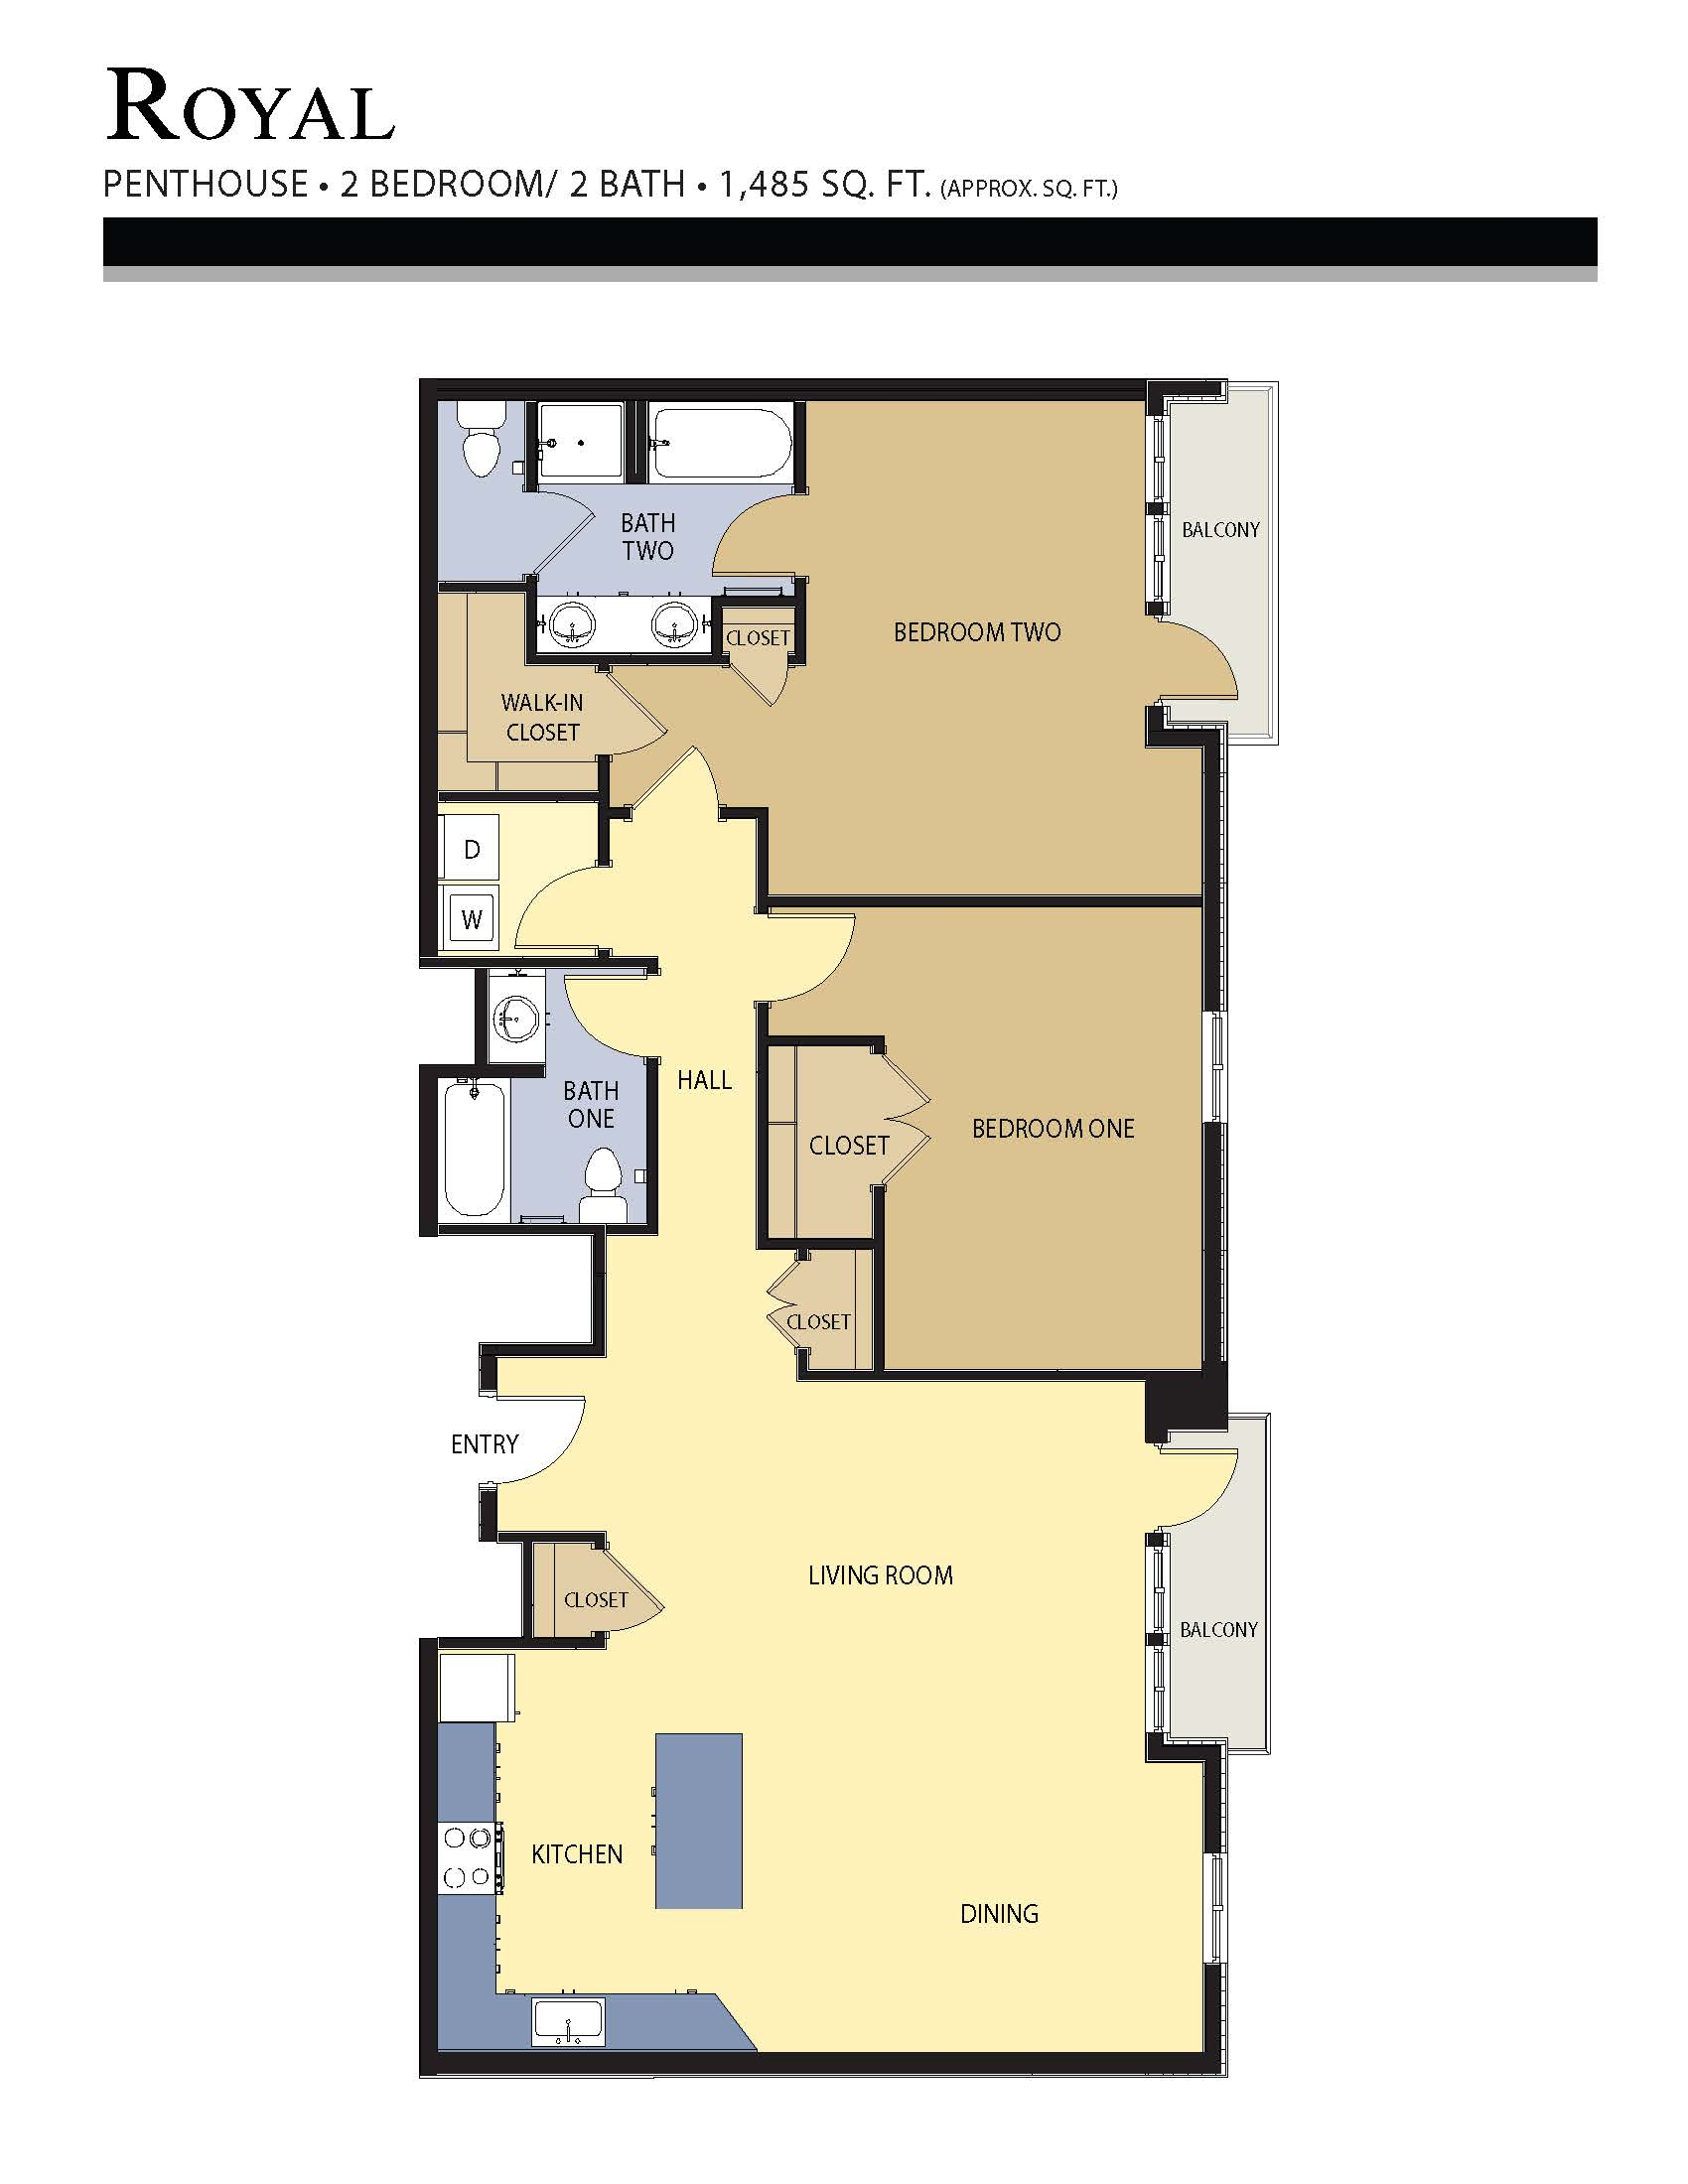 Royal floor plan - 2 Bed / 2 Bath (1,485 Sq Ft)